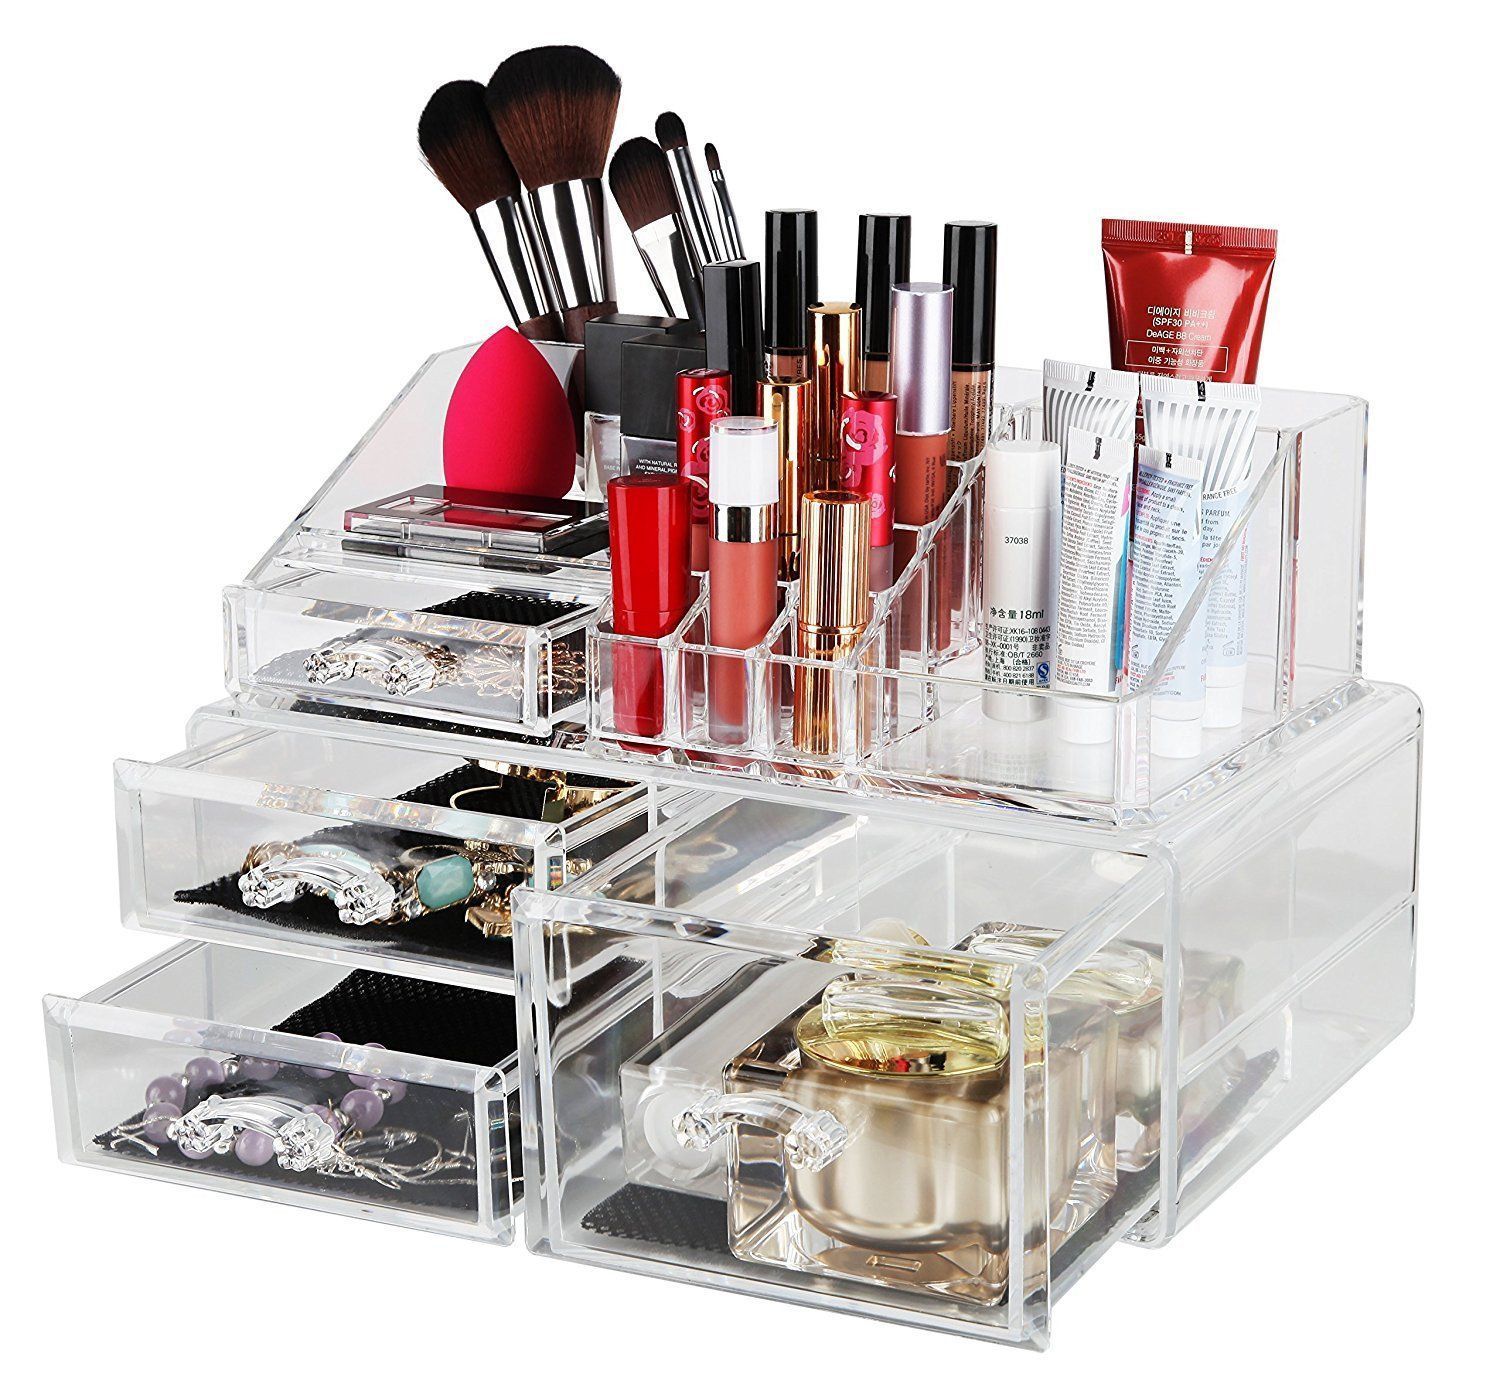 Finnhomy Makeup Organizer Acrylic Cosmetic Organizer Jewelry Storage  Organizer Counter Storage Case X Large Display